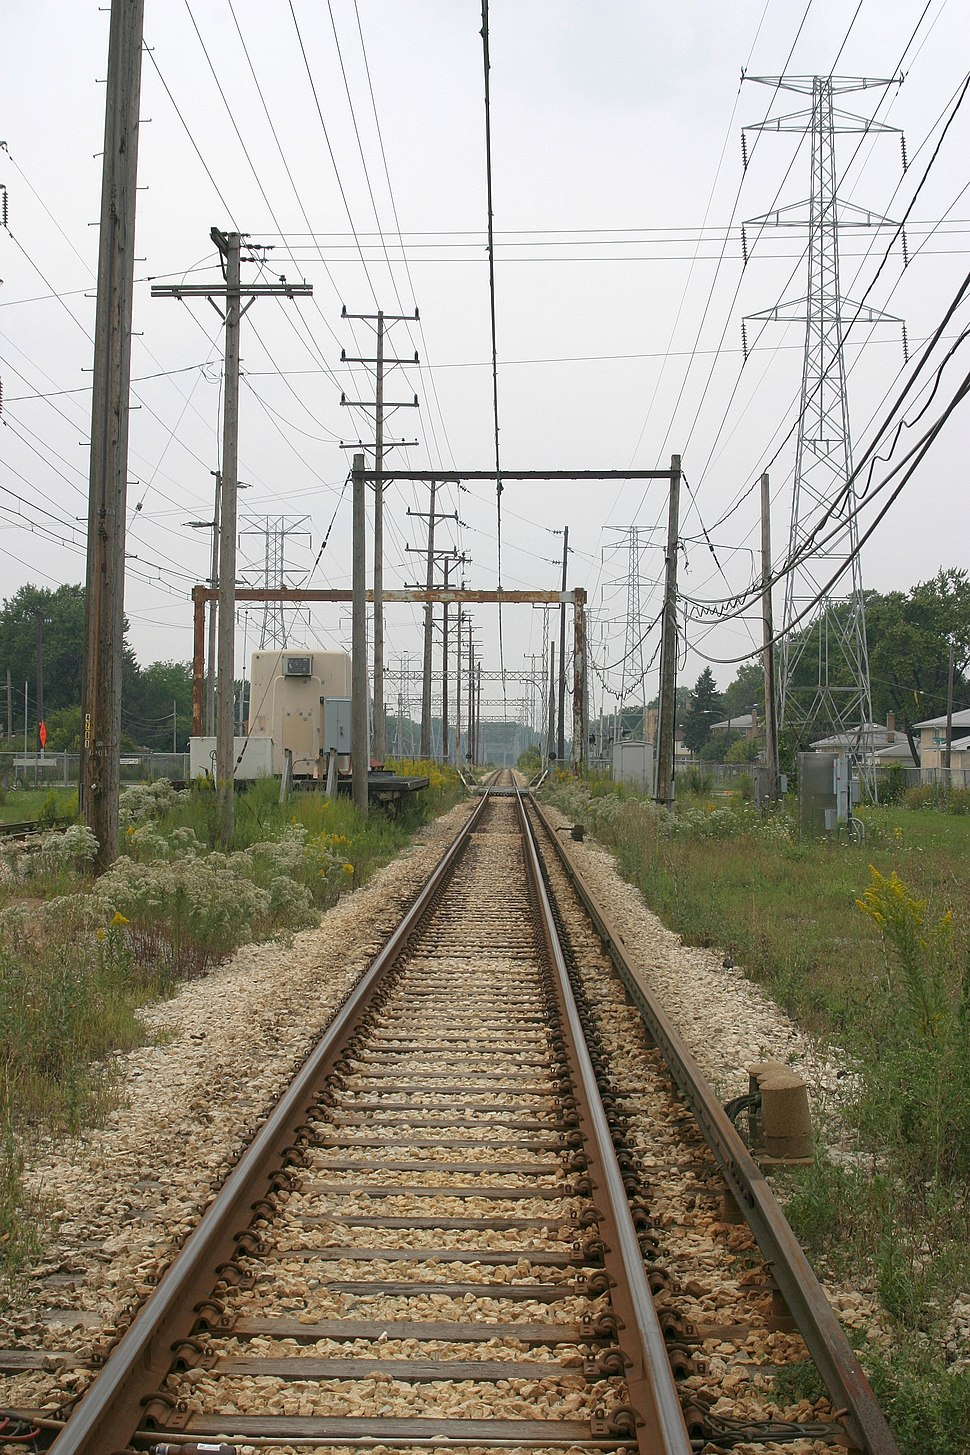 3rd rail to overhead wire transition zone on the Skokie Swift